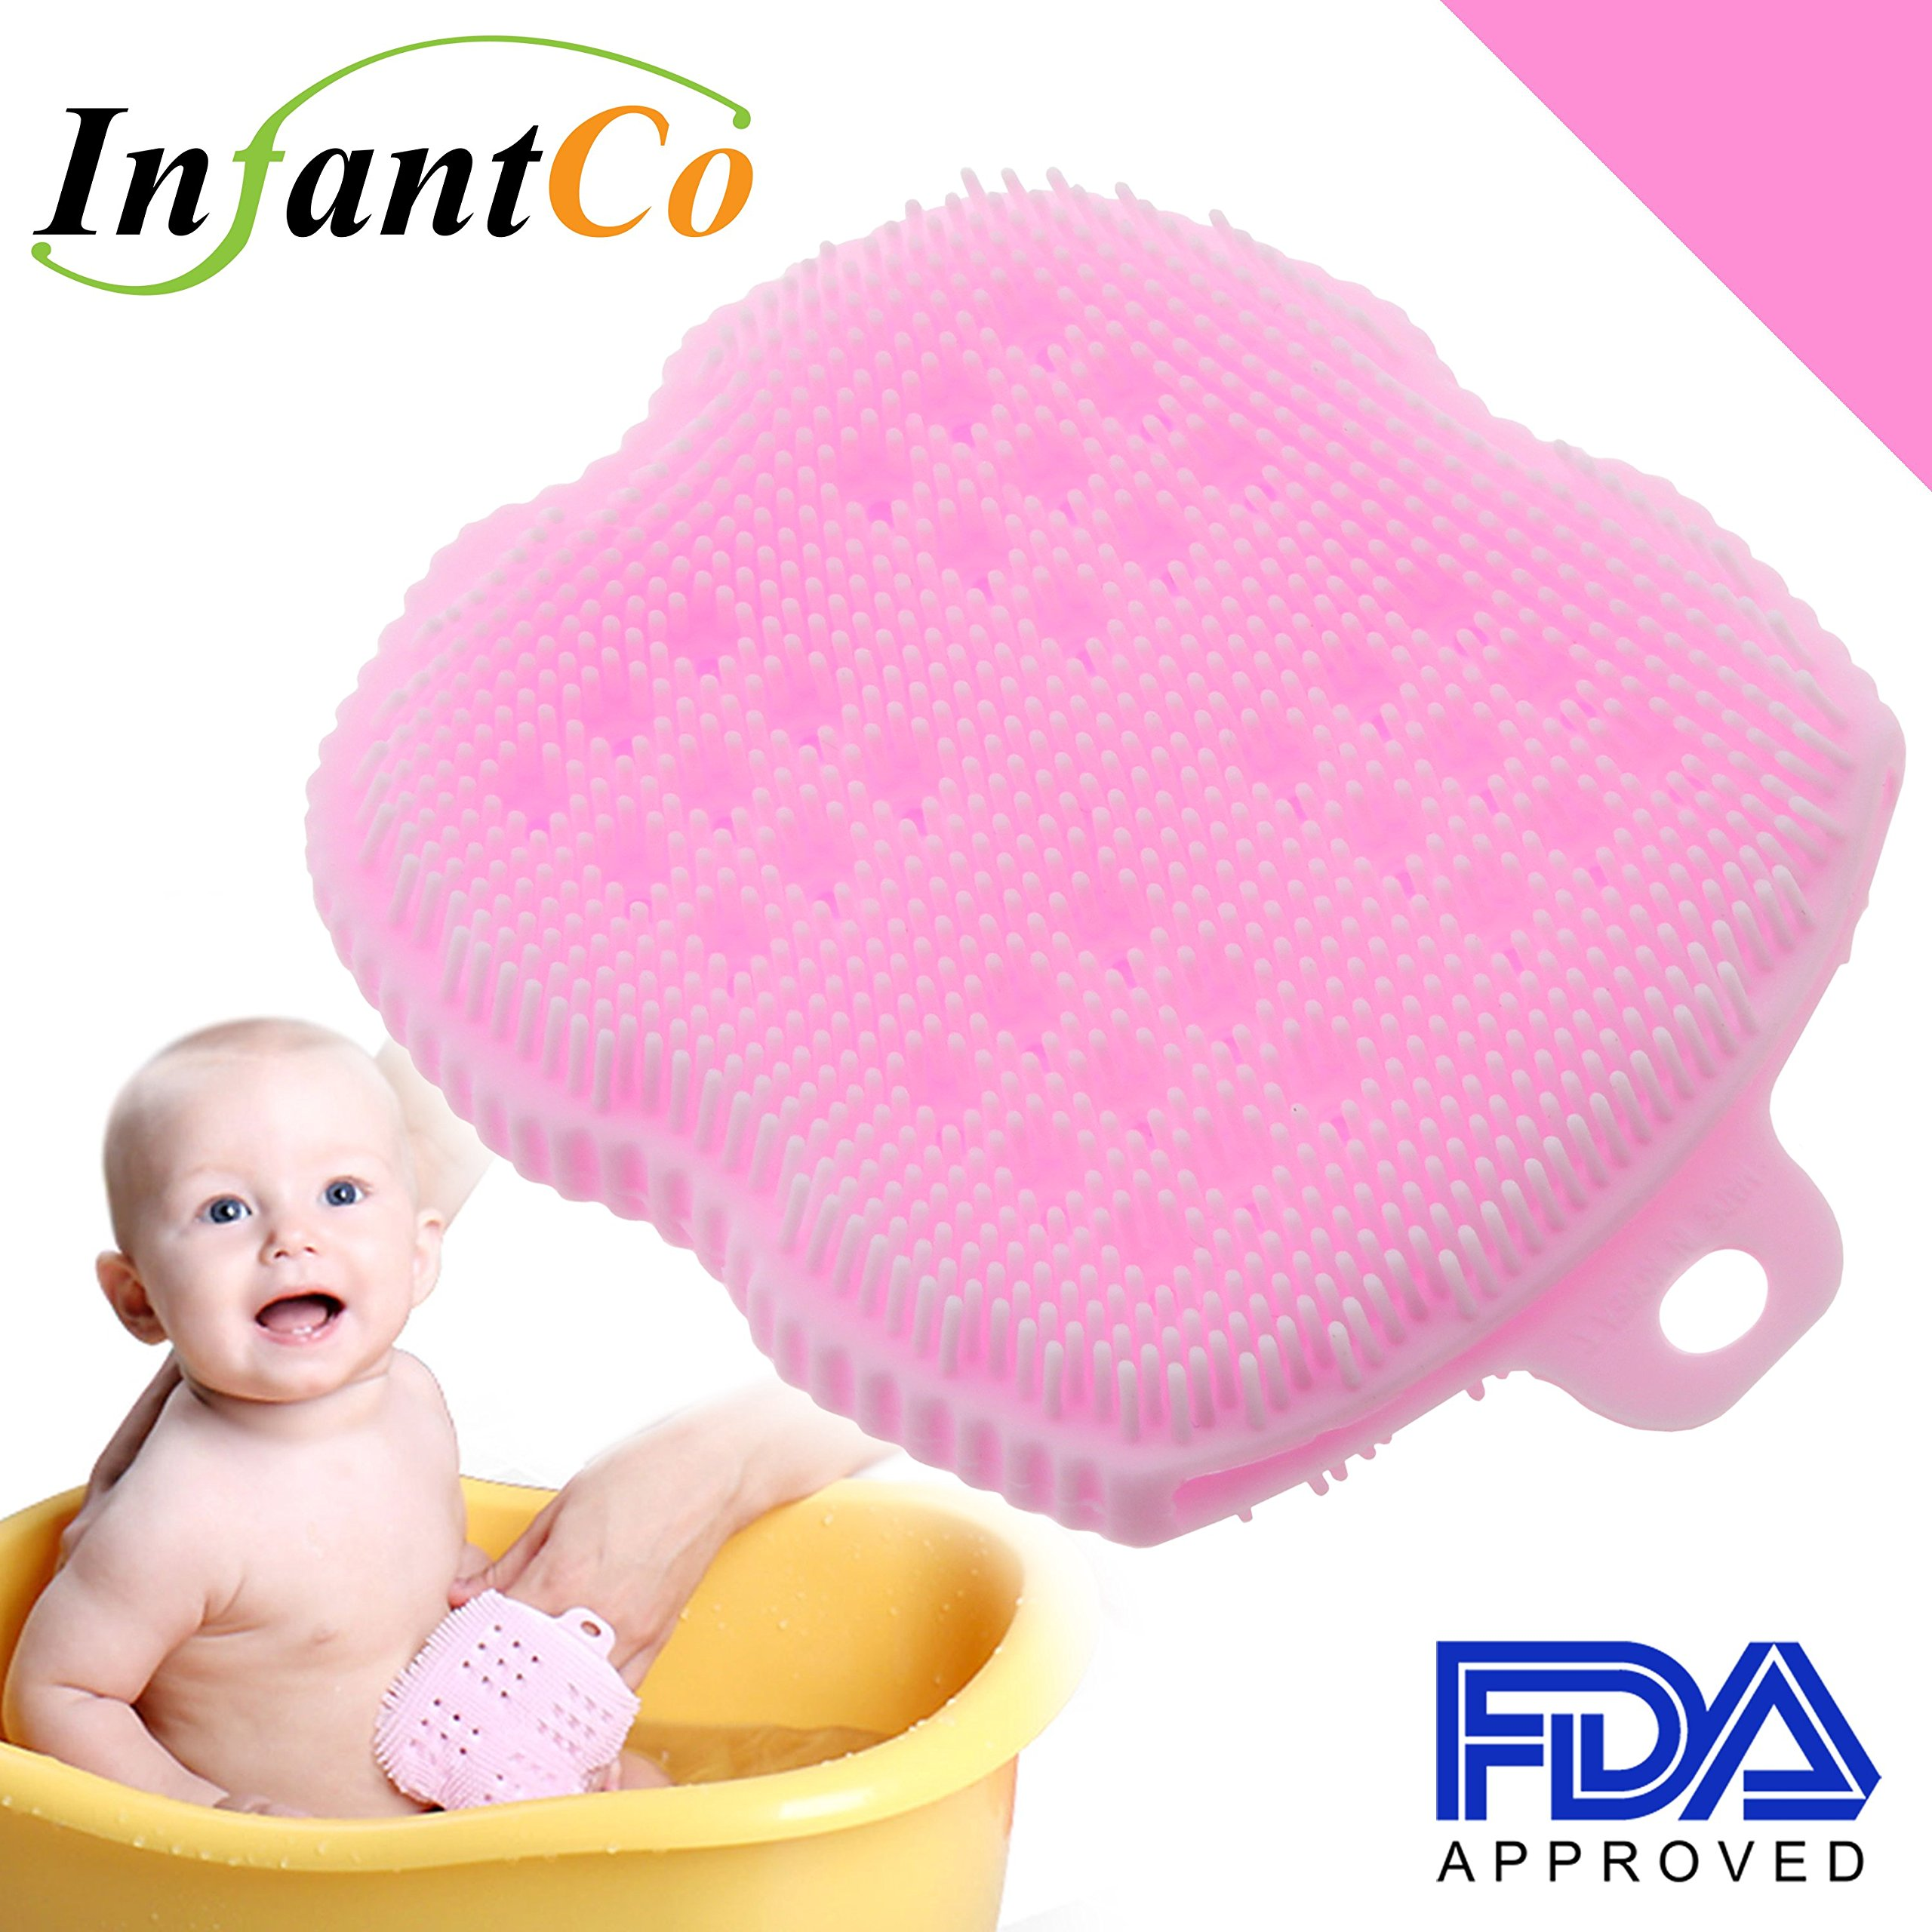 Amazon.com : InfantCo Anti-bacterial FDA-approved Ultra Soft Baby ...